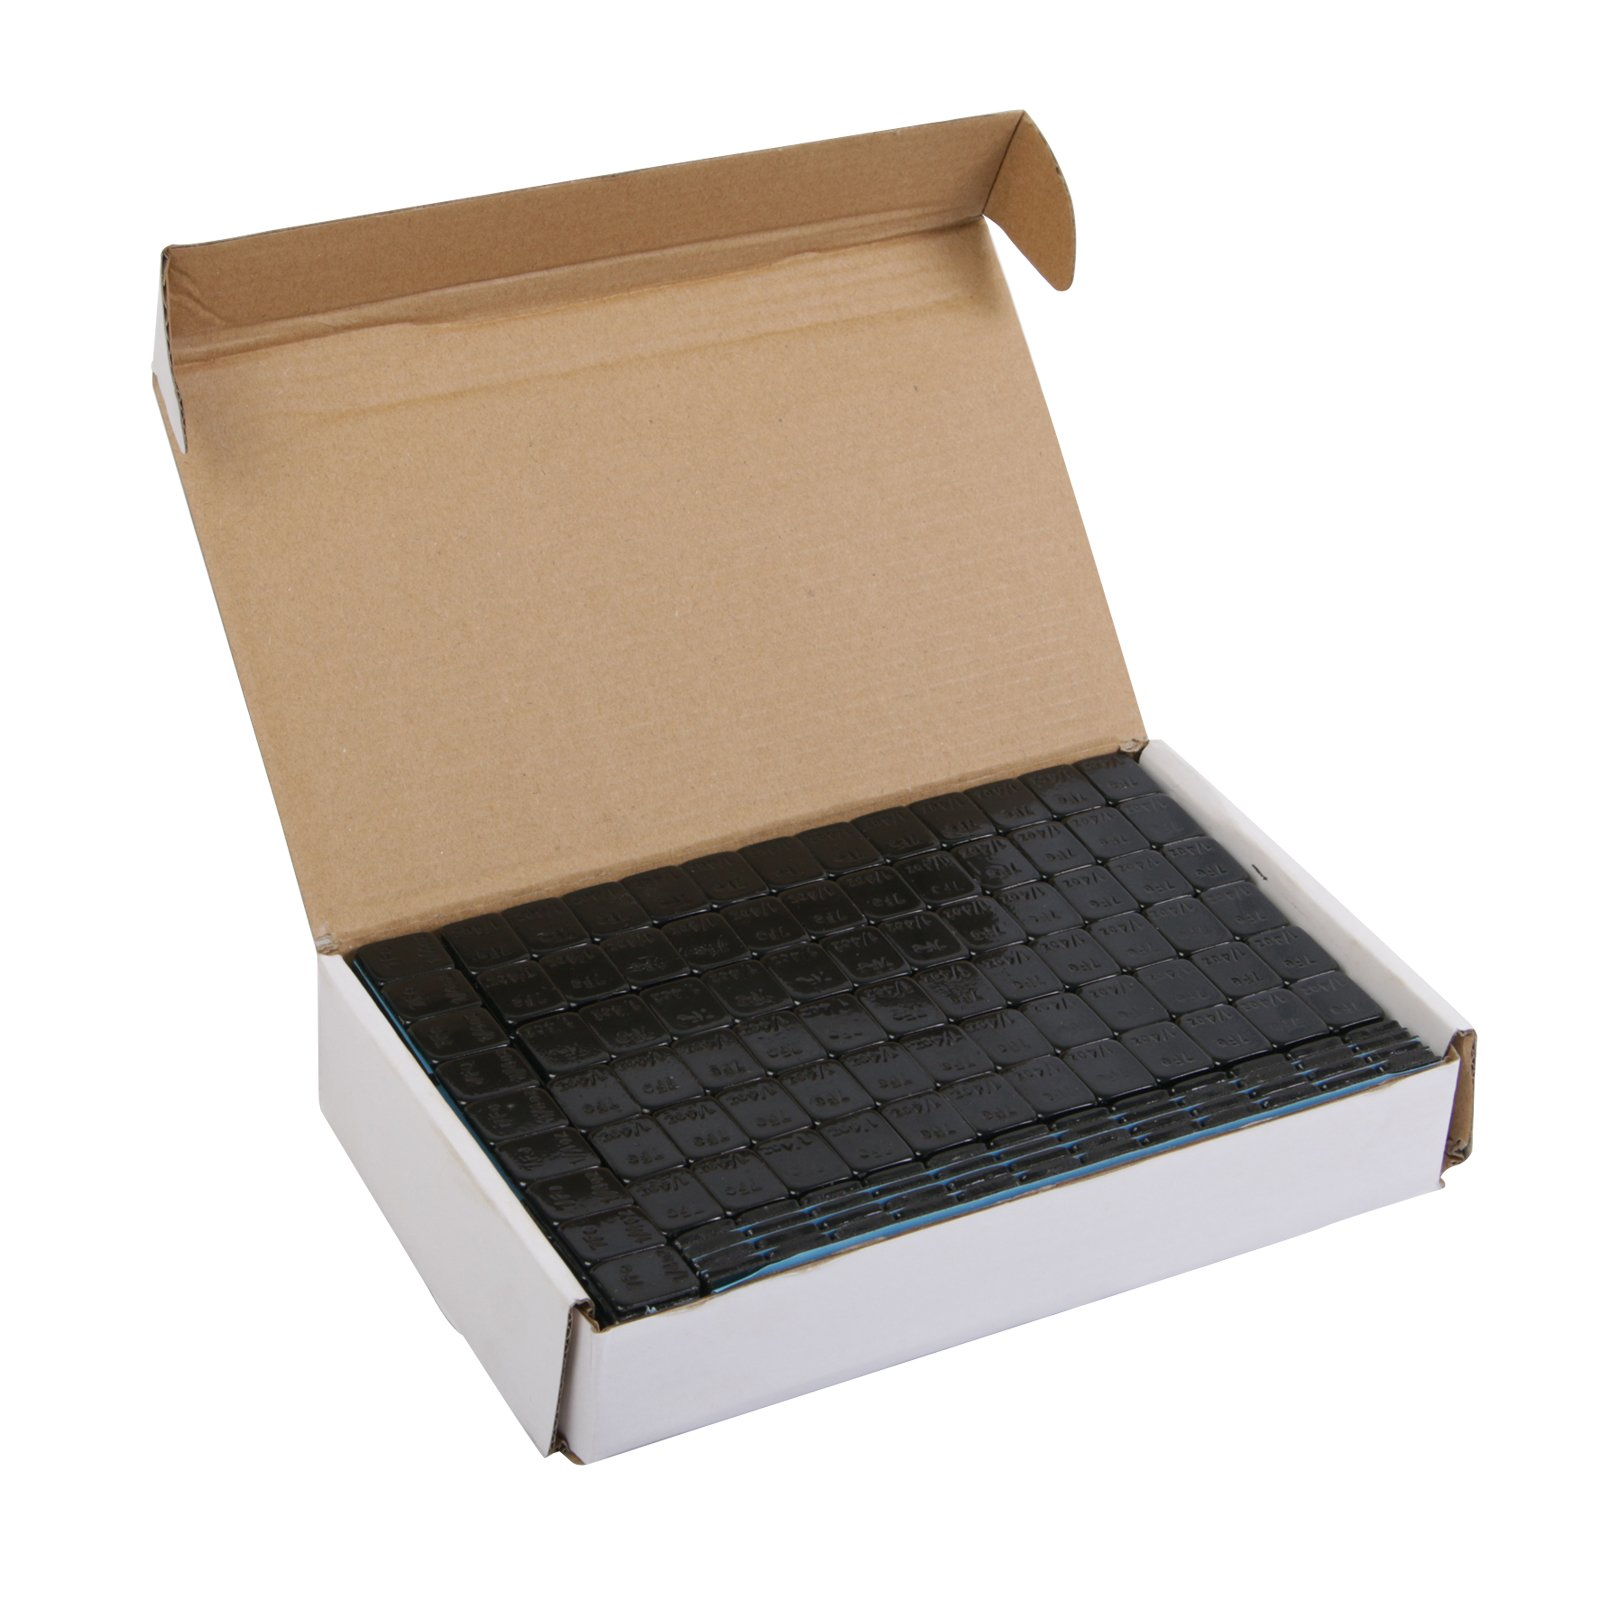 (1) Box of 1/4 ounce (0.25oz) Black, Adhesive, Stick On Wheel Weights (Low Profile) - Zinc Plated (Lead Free) - 204oz (~13 lbs) total, 68 total 3-oz strips, 816 total pieces